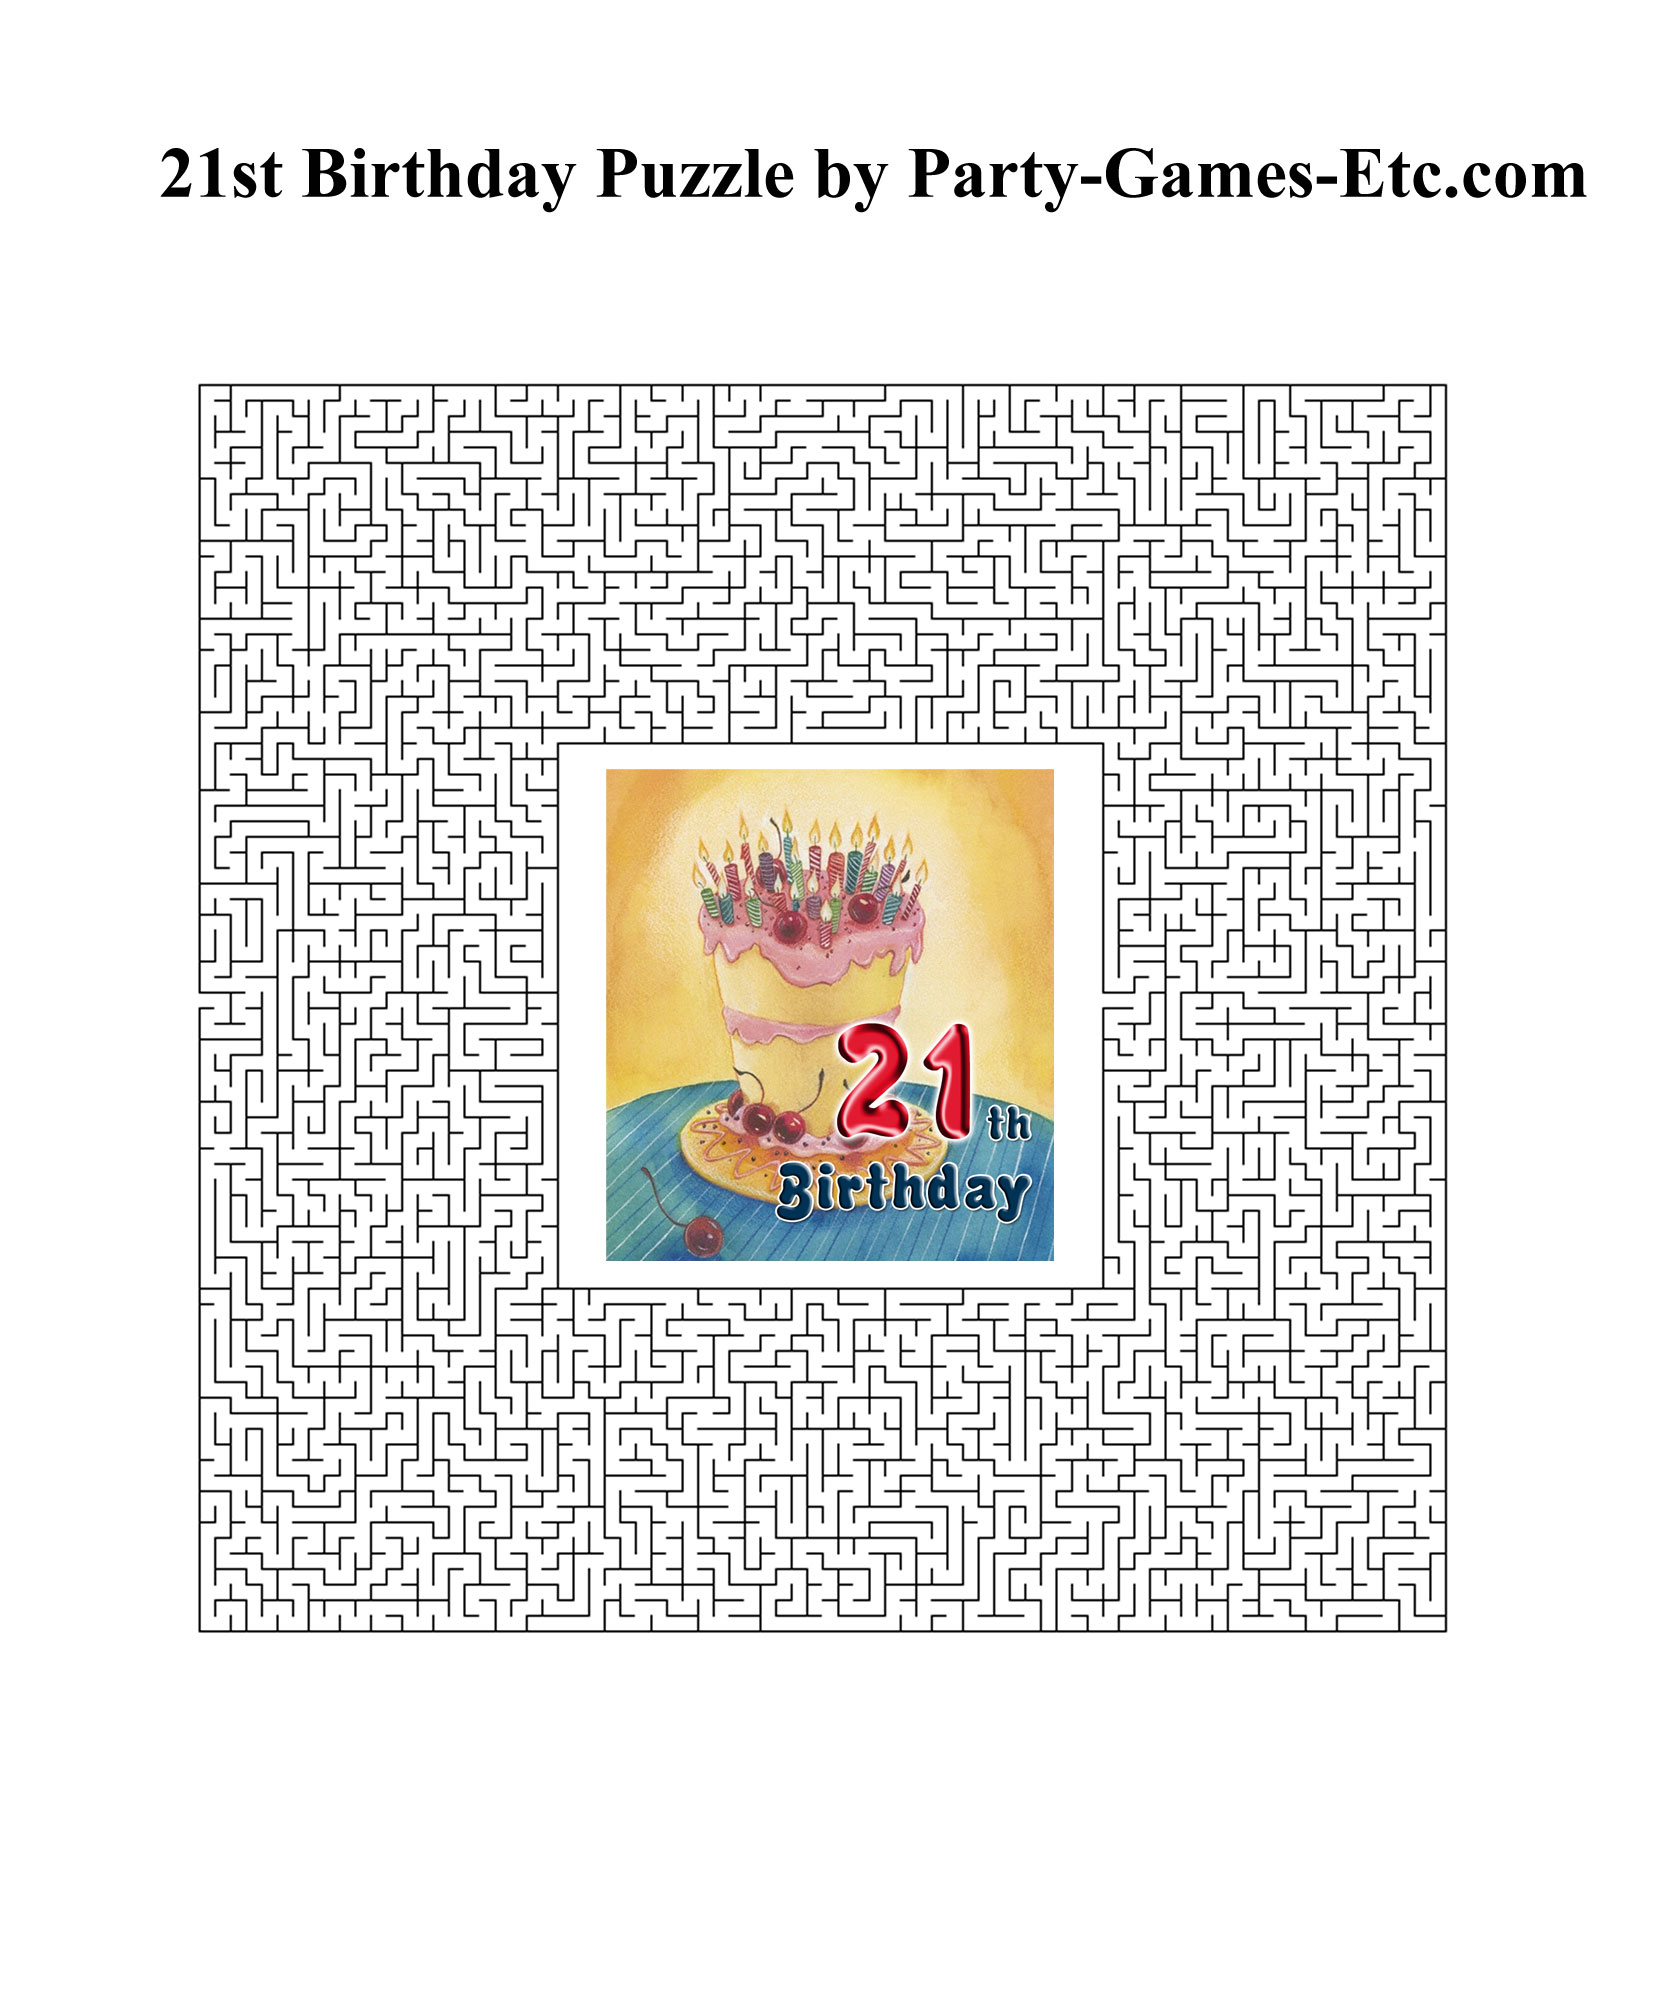 21st Birthday Party Games, Free Printable Games And